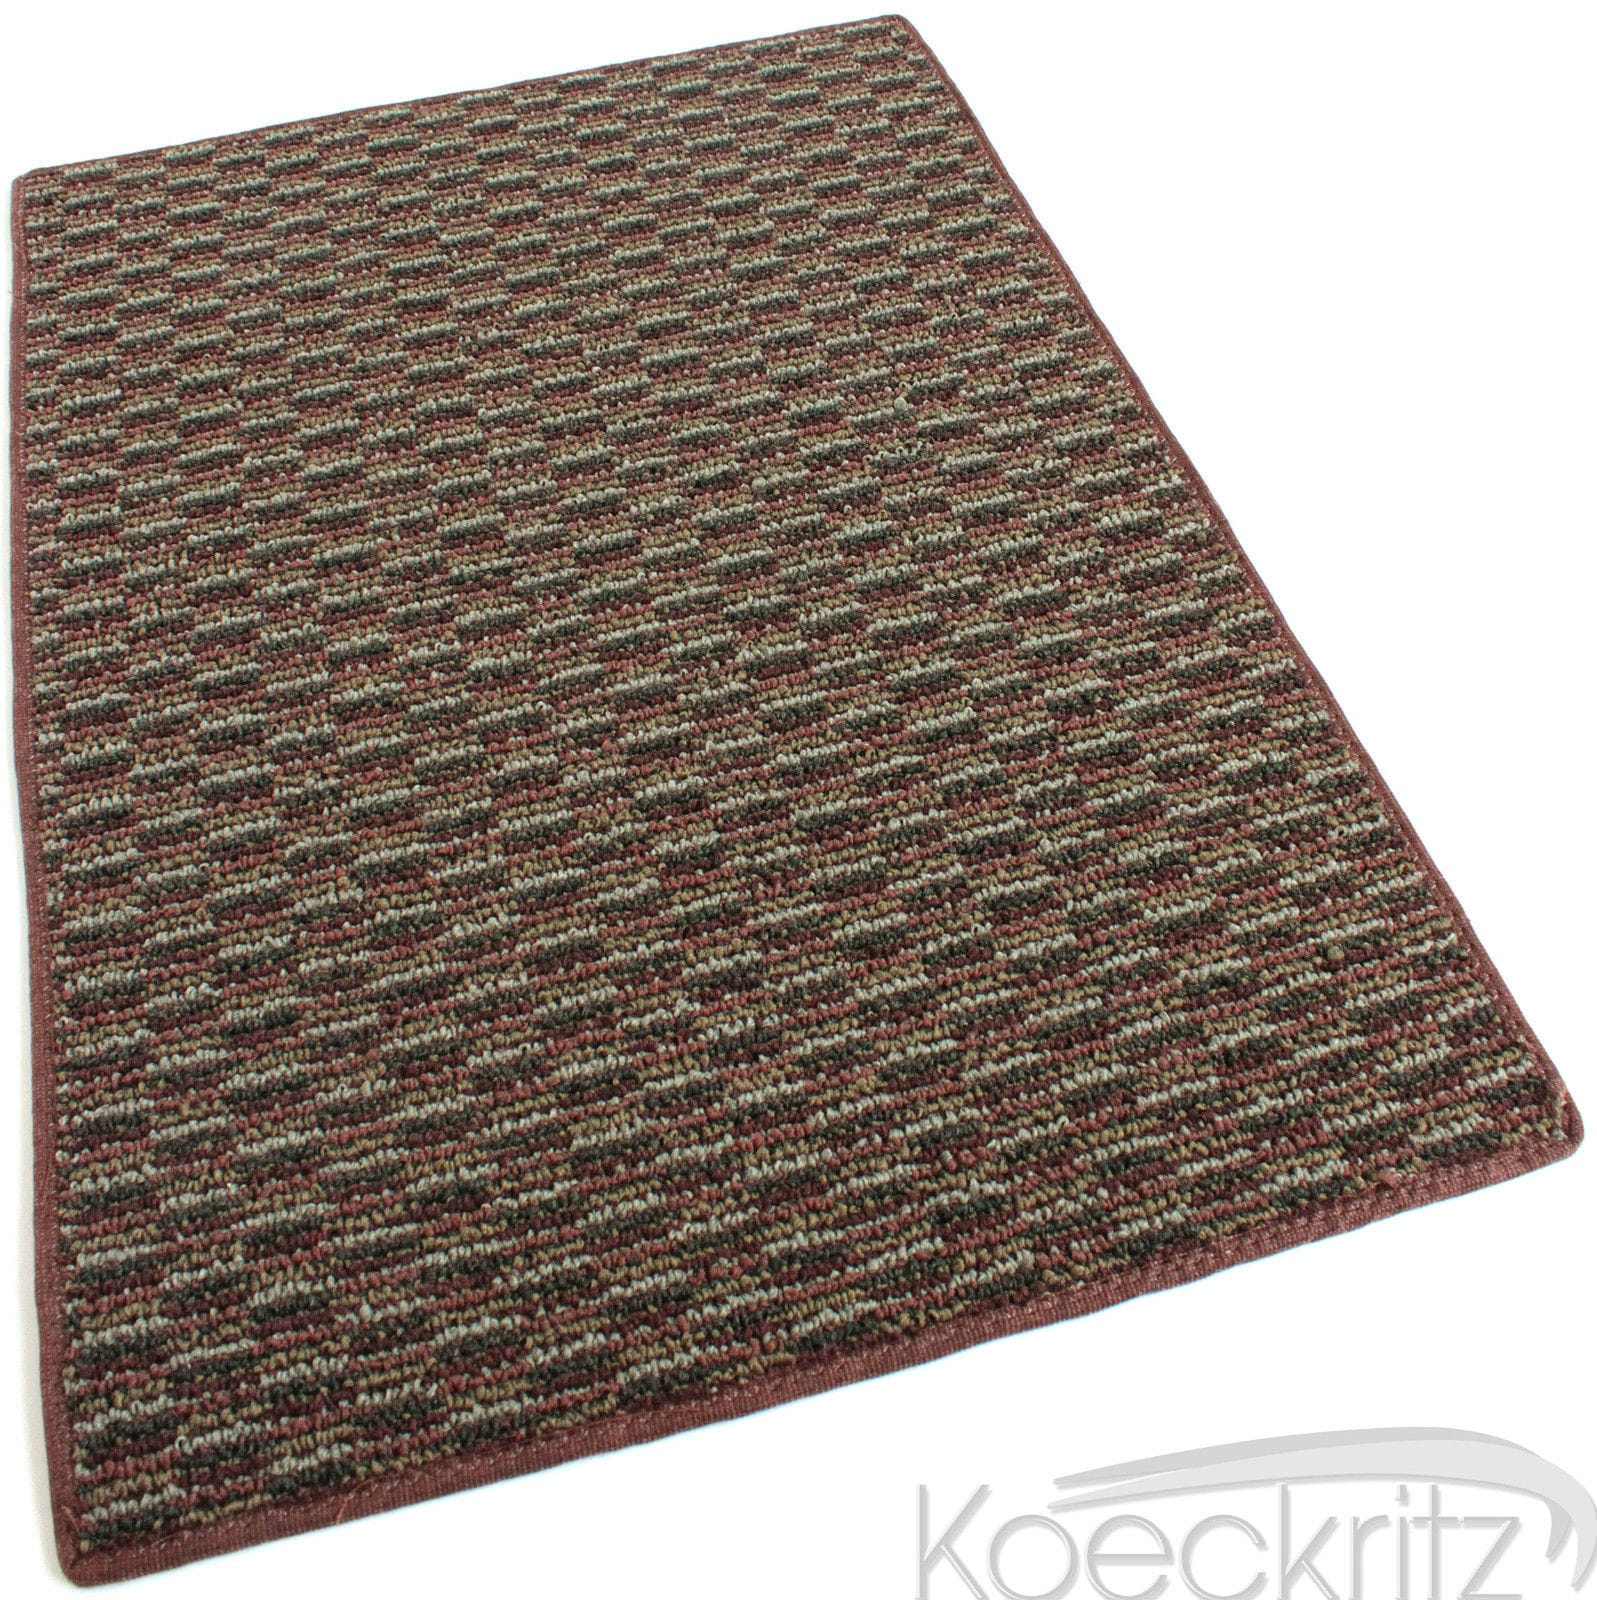 Pattern Play Brick Walkway Level Loop Indoor-Outdoor Area Rug Carpet